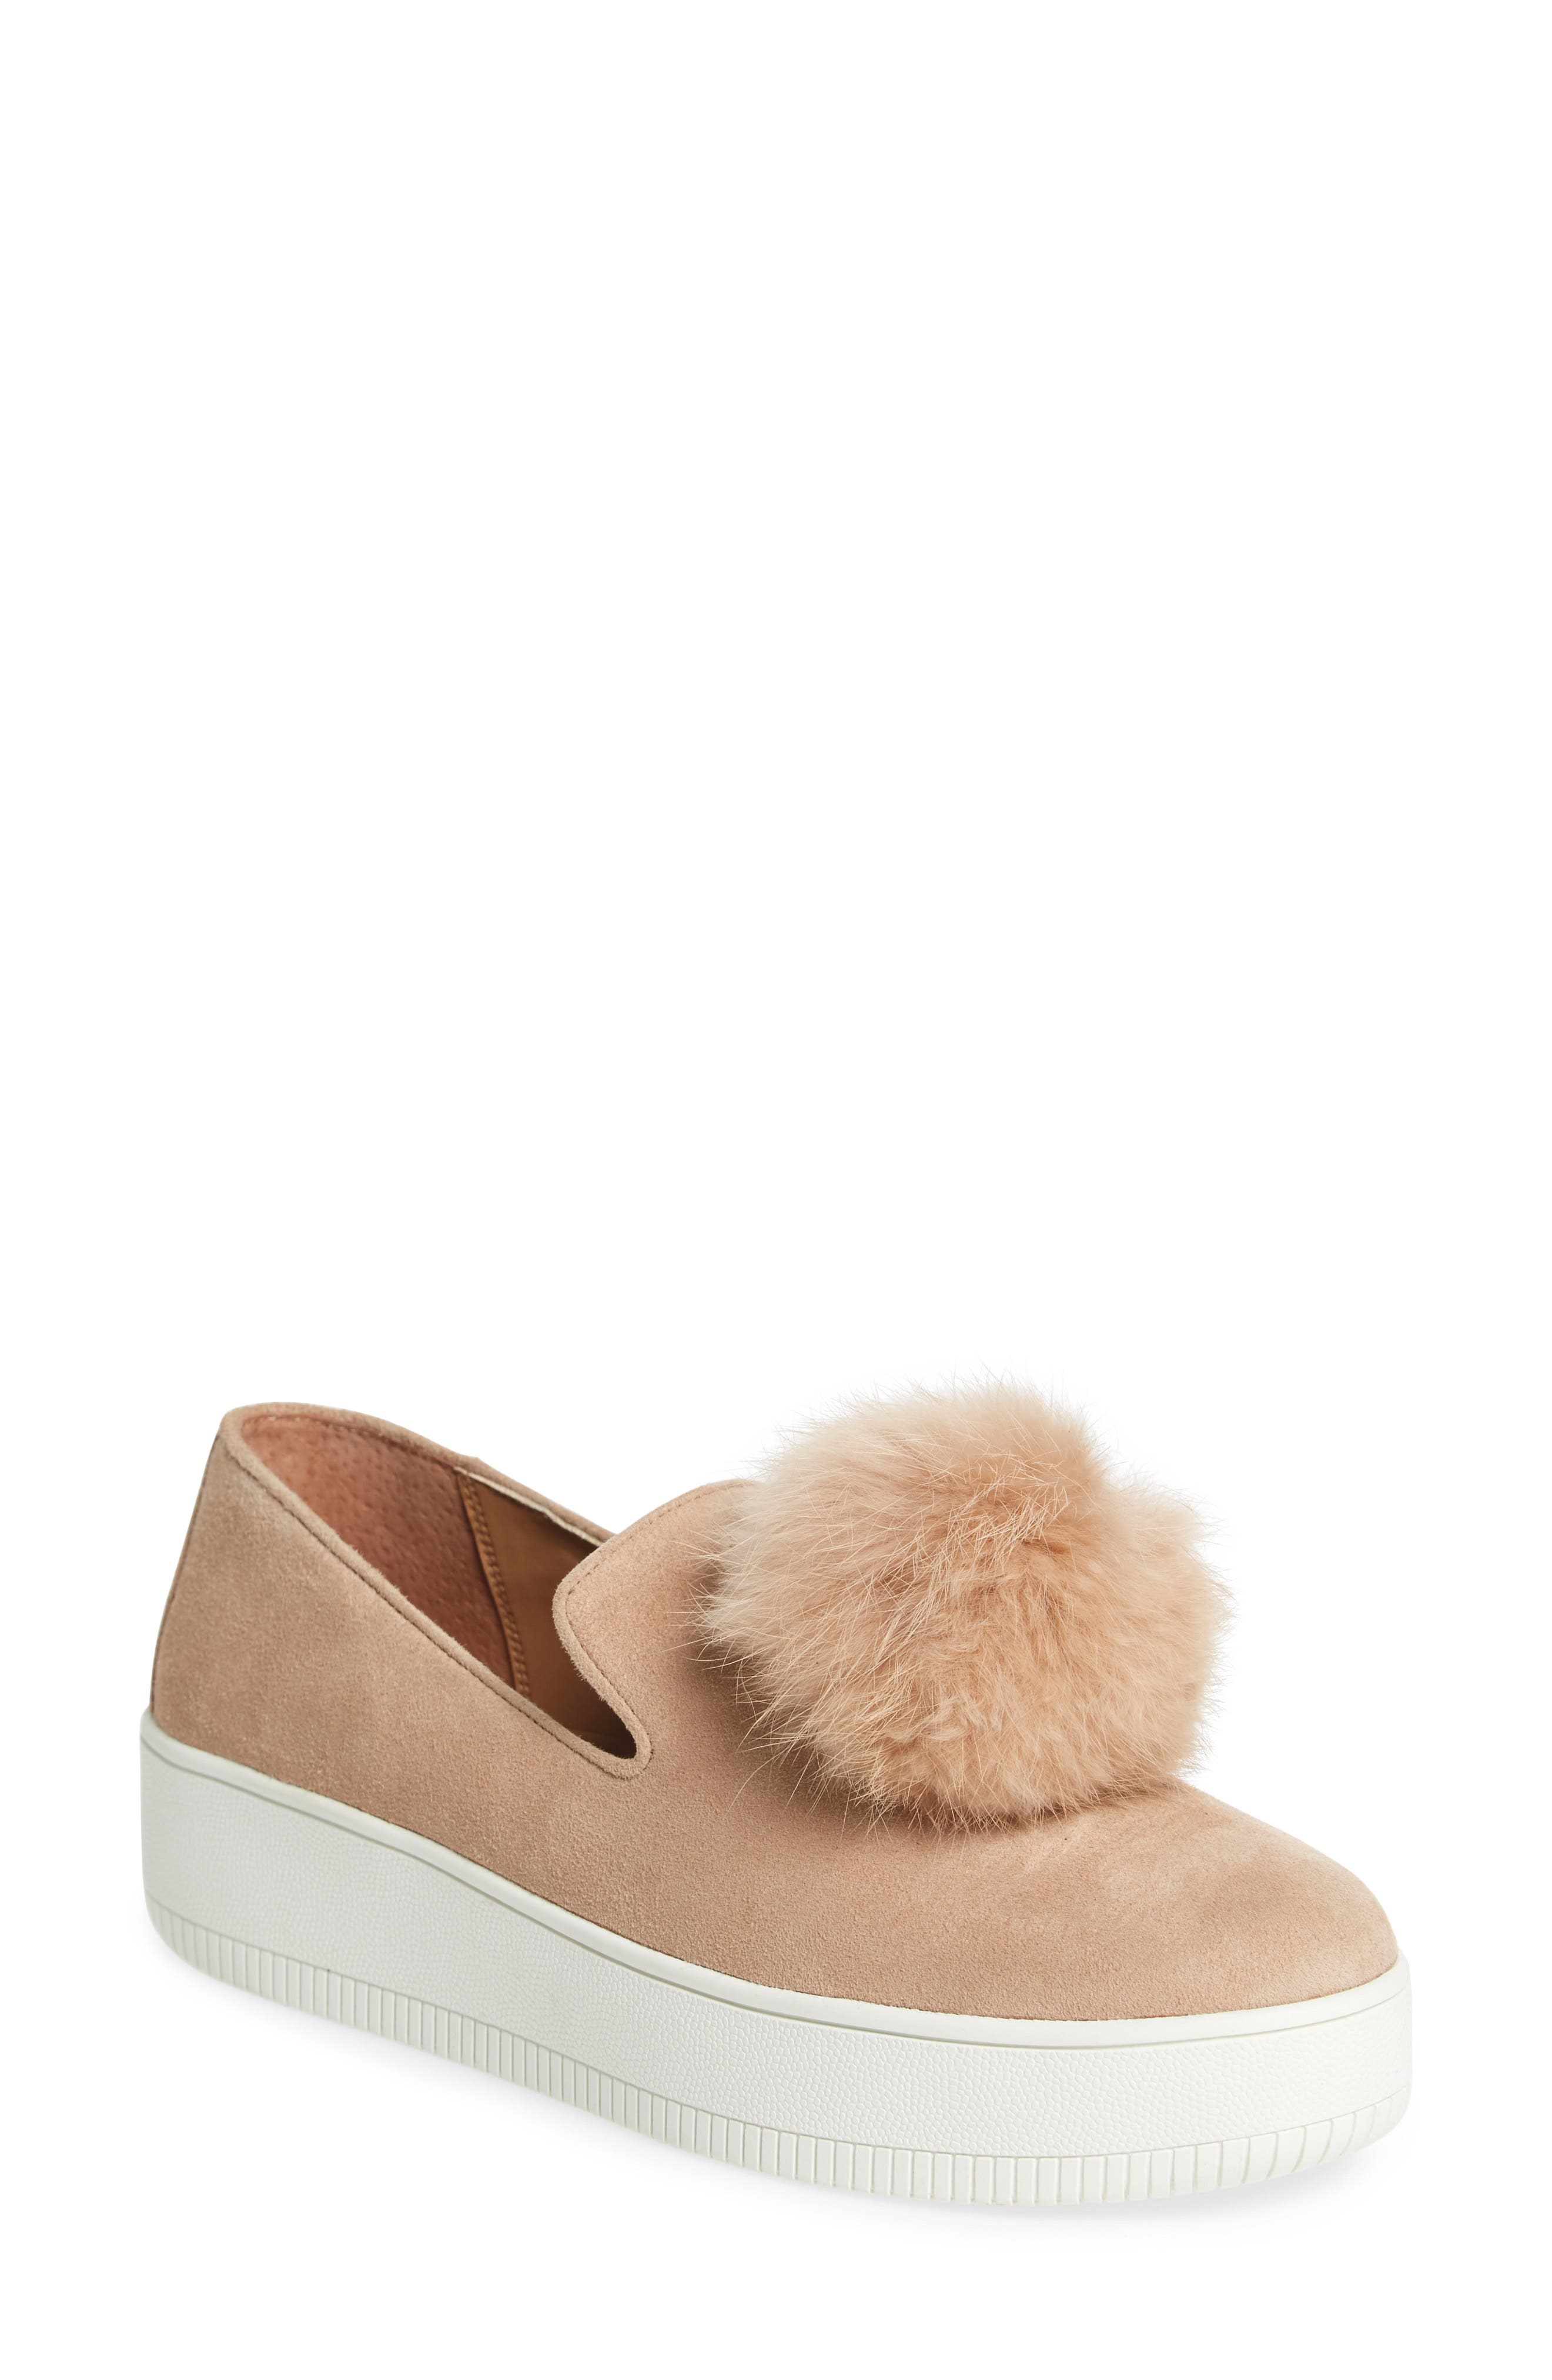 Alternate Image 1 Selected - Linea Paolo Sammy Platform Sneaker with Genuine Rabbit Fur Pompom (Women)